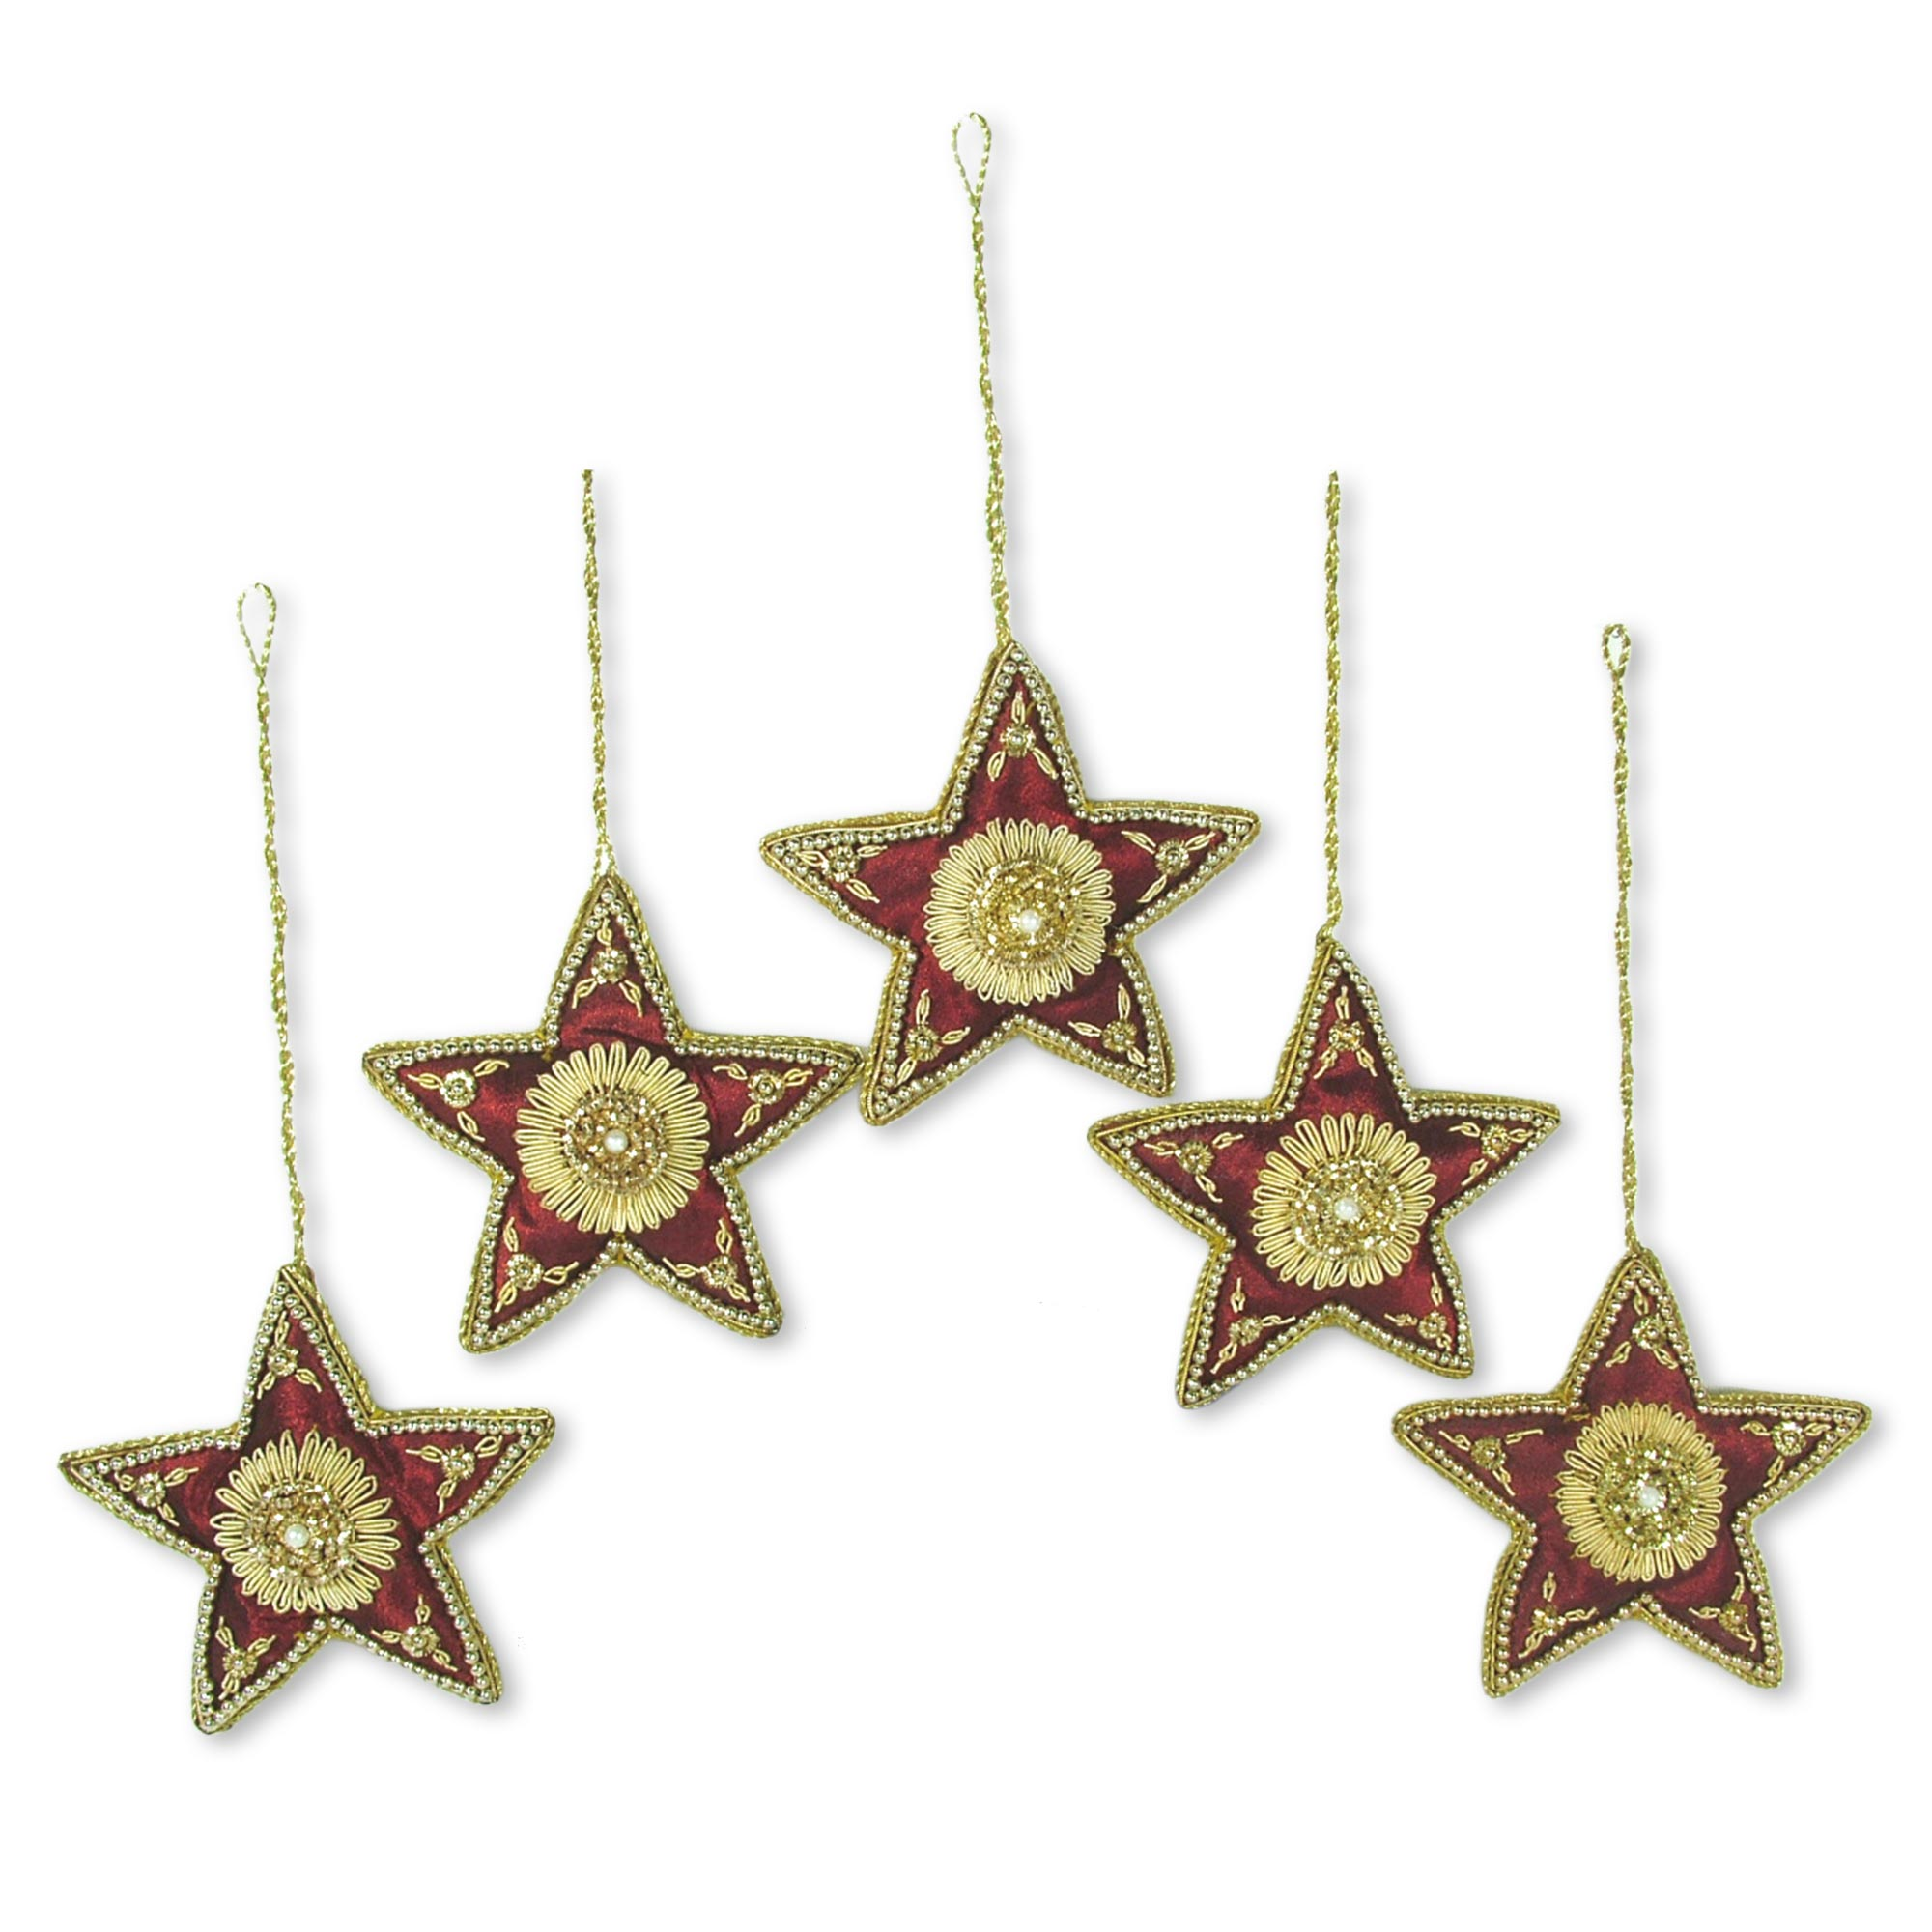 Red Star Shaped Beaded Tree Ornaments from India (Set of 5), 'Scarlet Stars' NOVICA Fair Trade